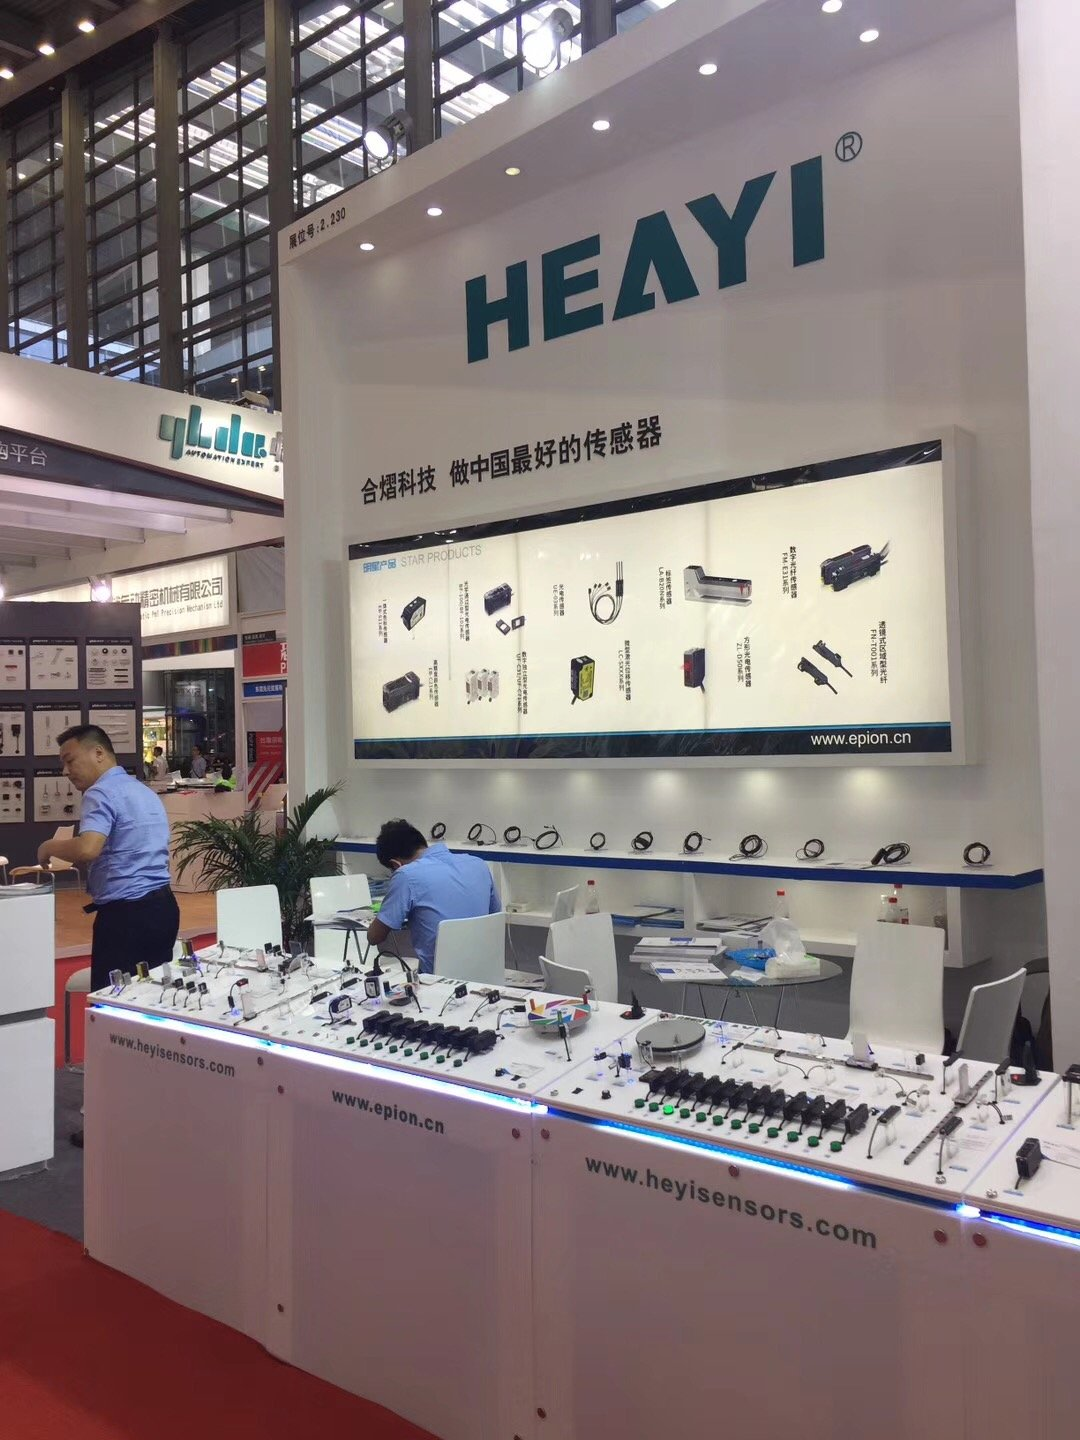 Heyi-2018 the 22th Southern China international industrial automation exhibition News About Proximit-1